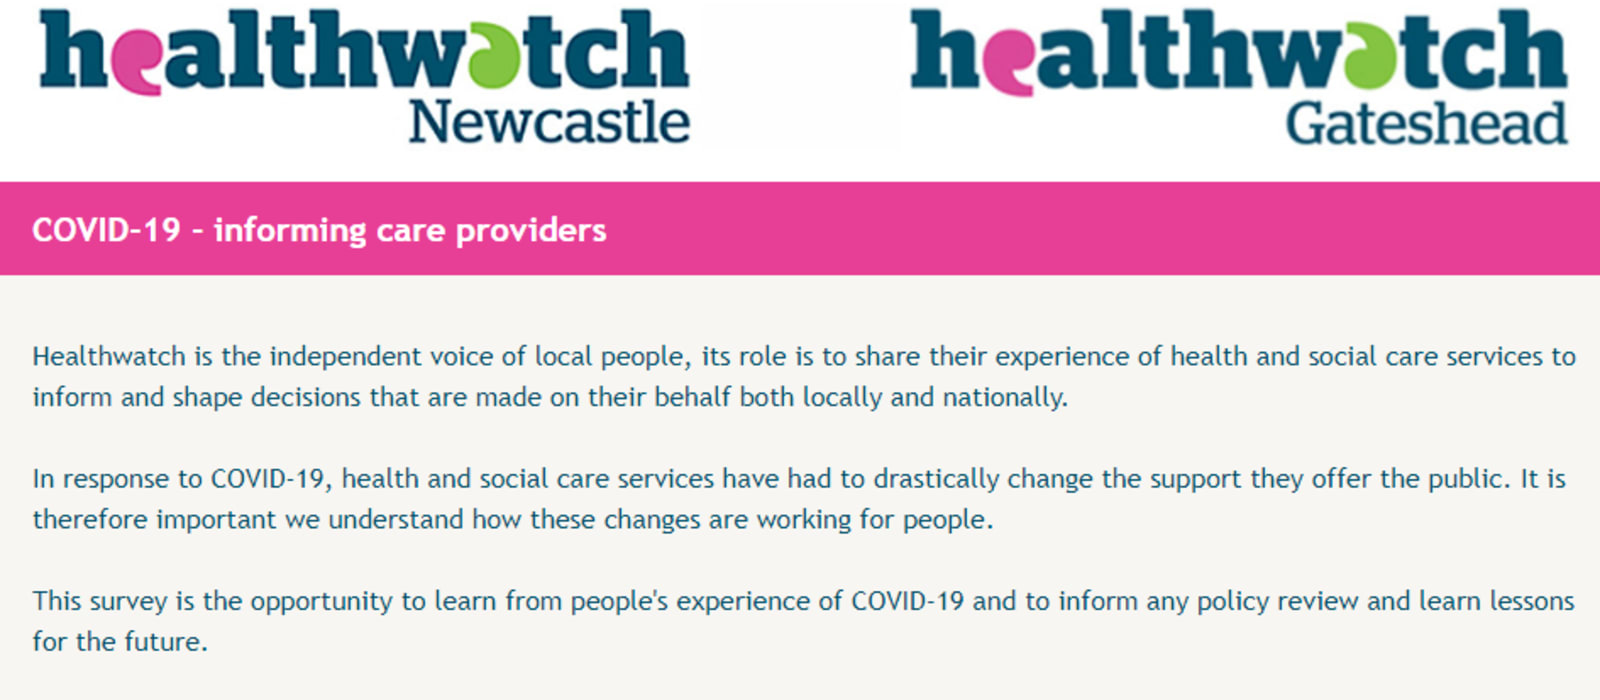 Healthwatch Survey seeks your experiences during Covid-19